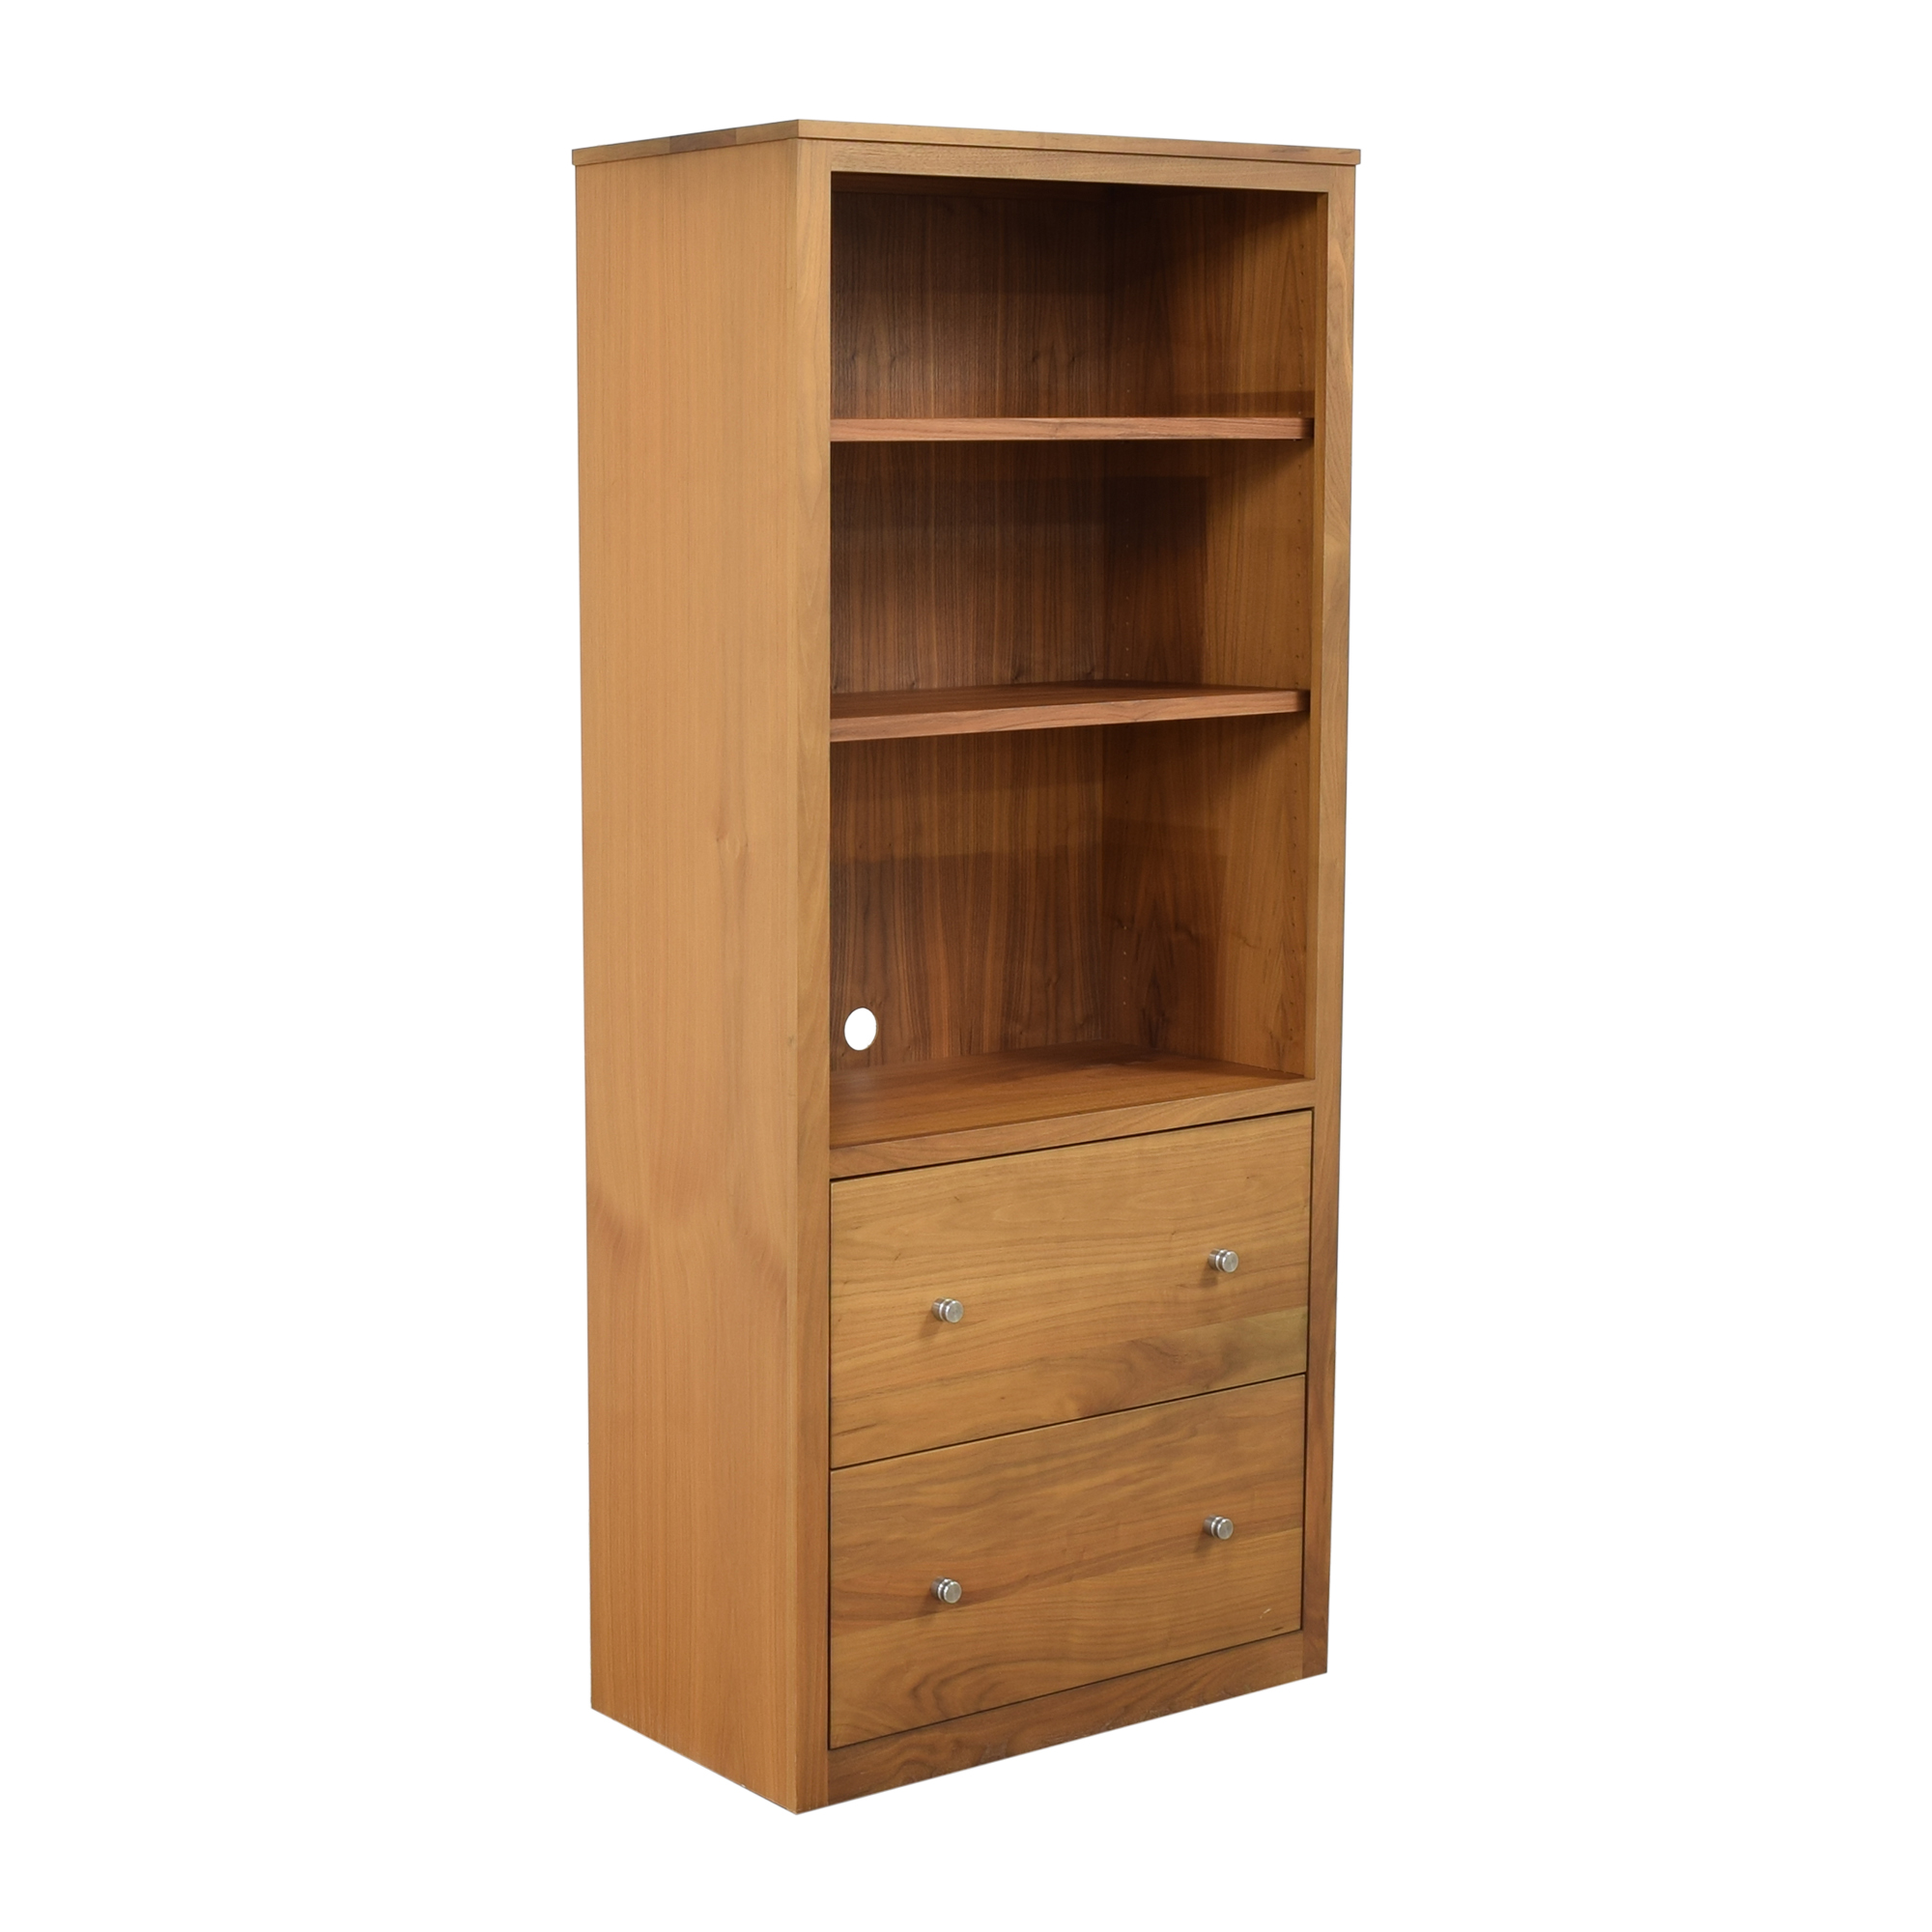 Room & Board Woodwind Bookcase with Drawers / Storage